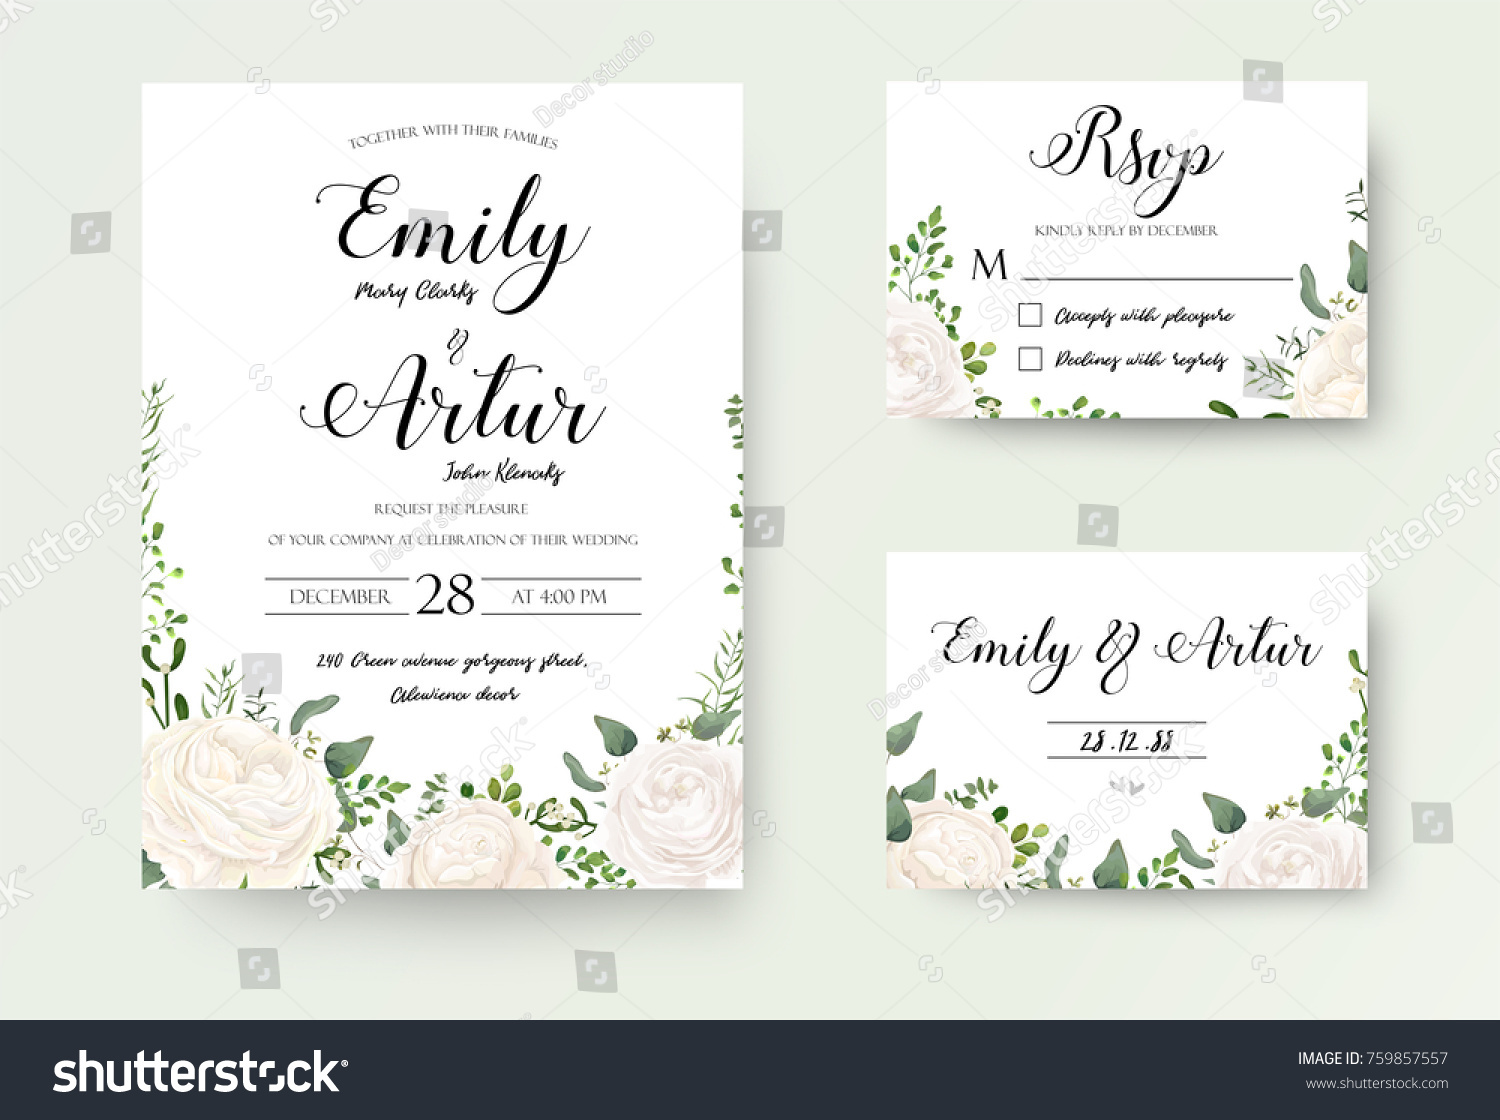 wedding invitation floral invite rsvp cute のベクター画像素材